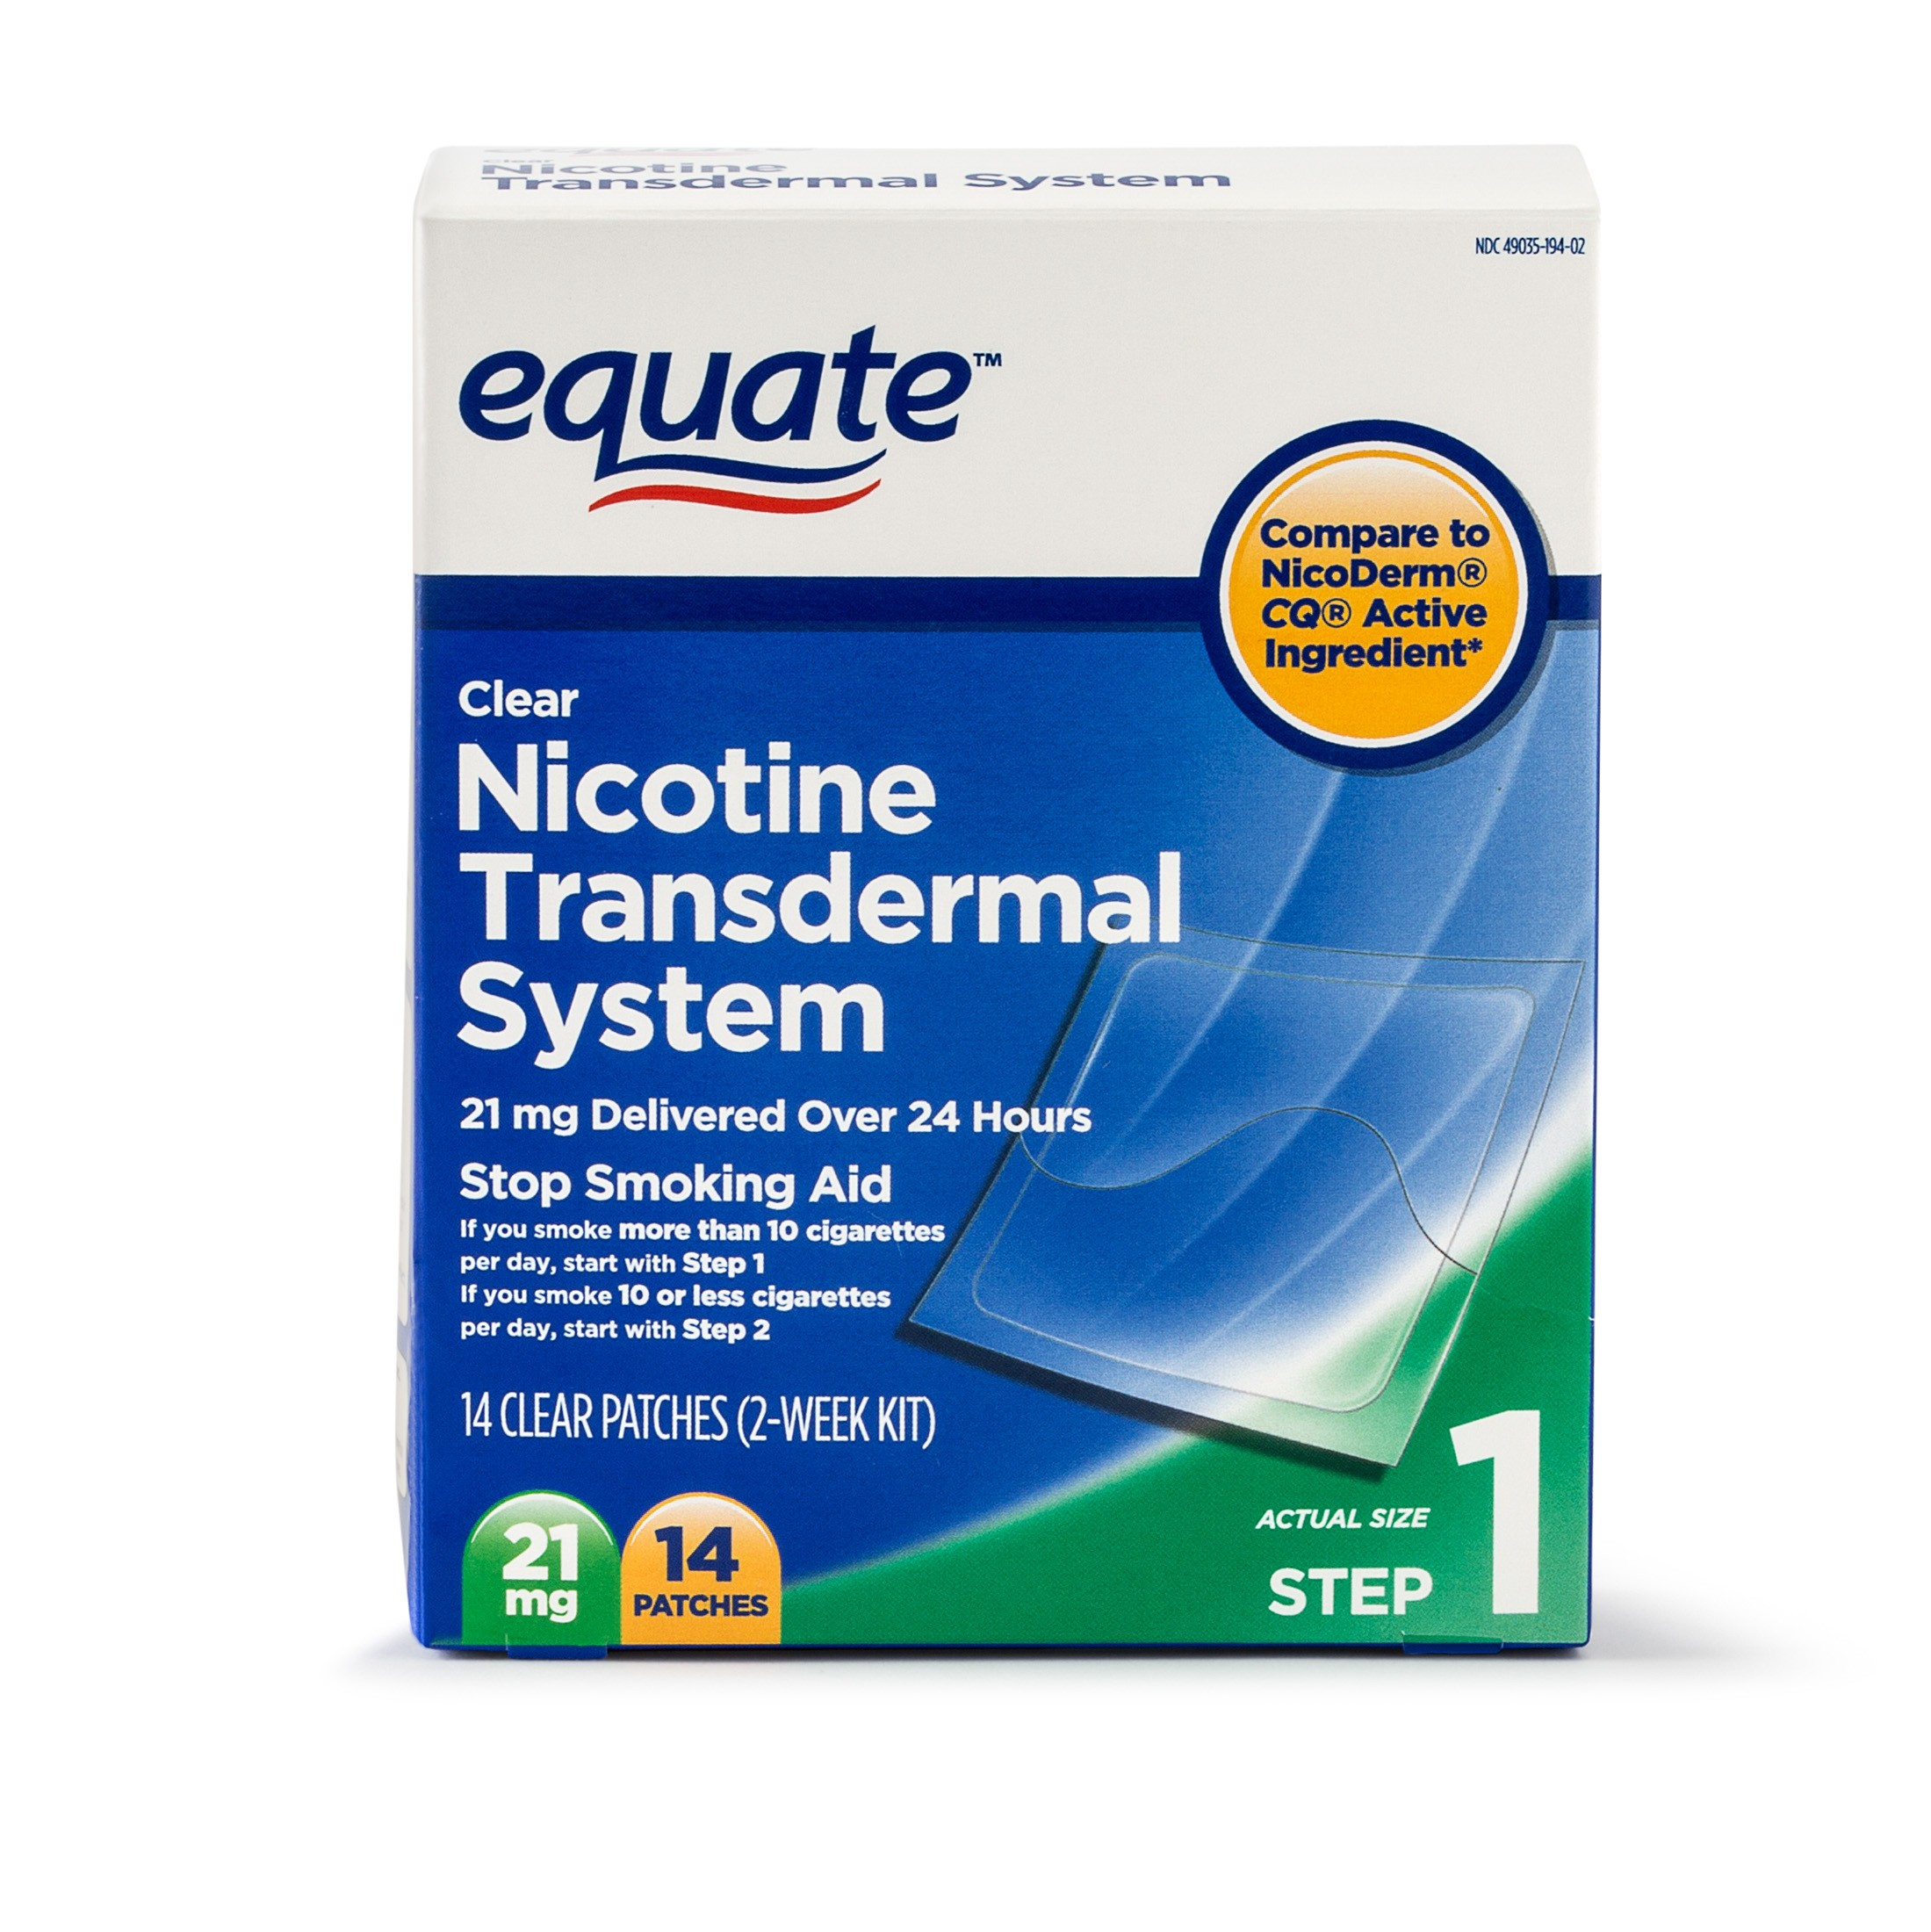 Equate Nicotine Transdermal System Step 1 Clear Patches 21 mg 14 Ct Walmart